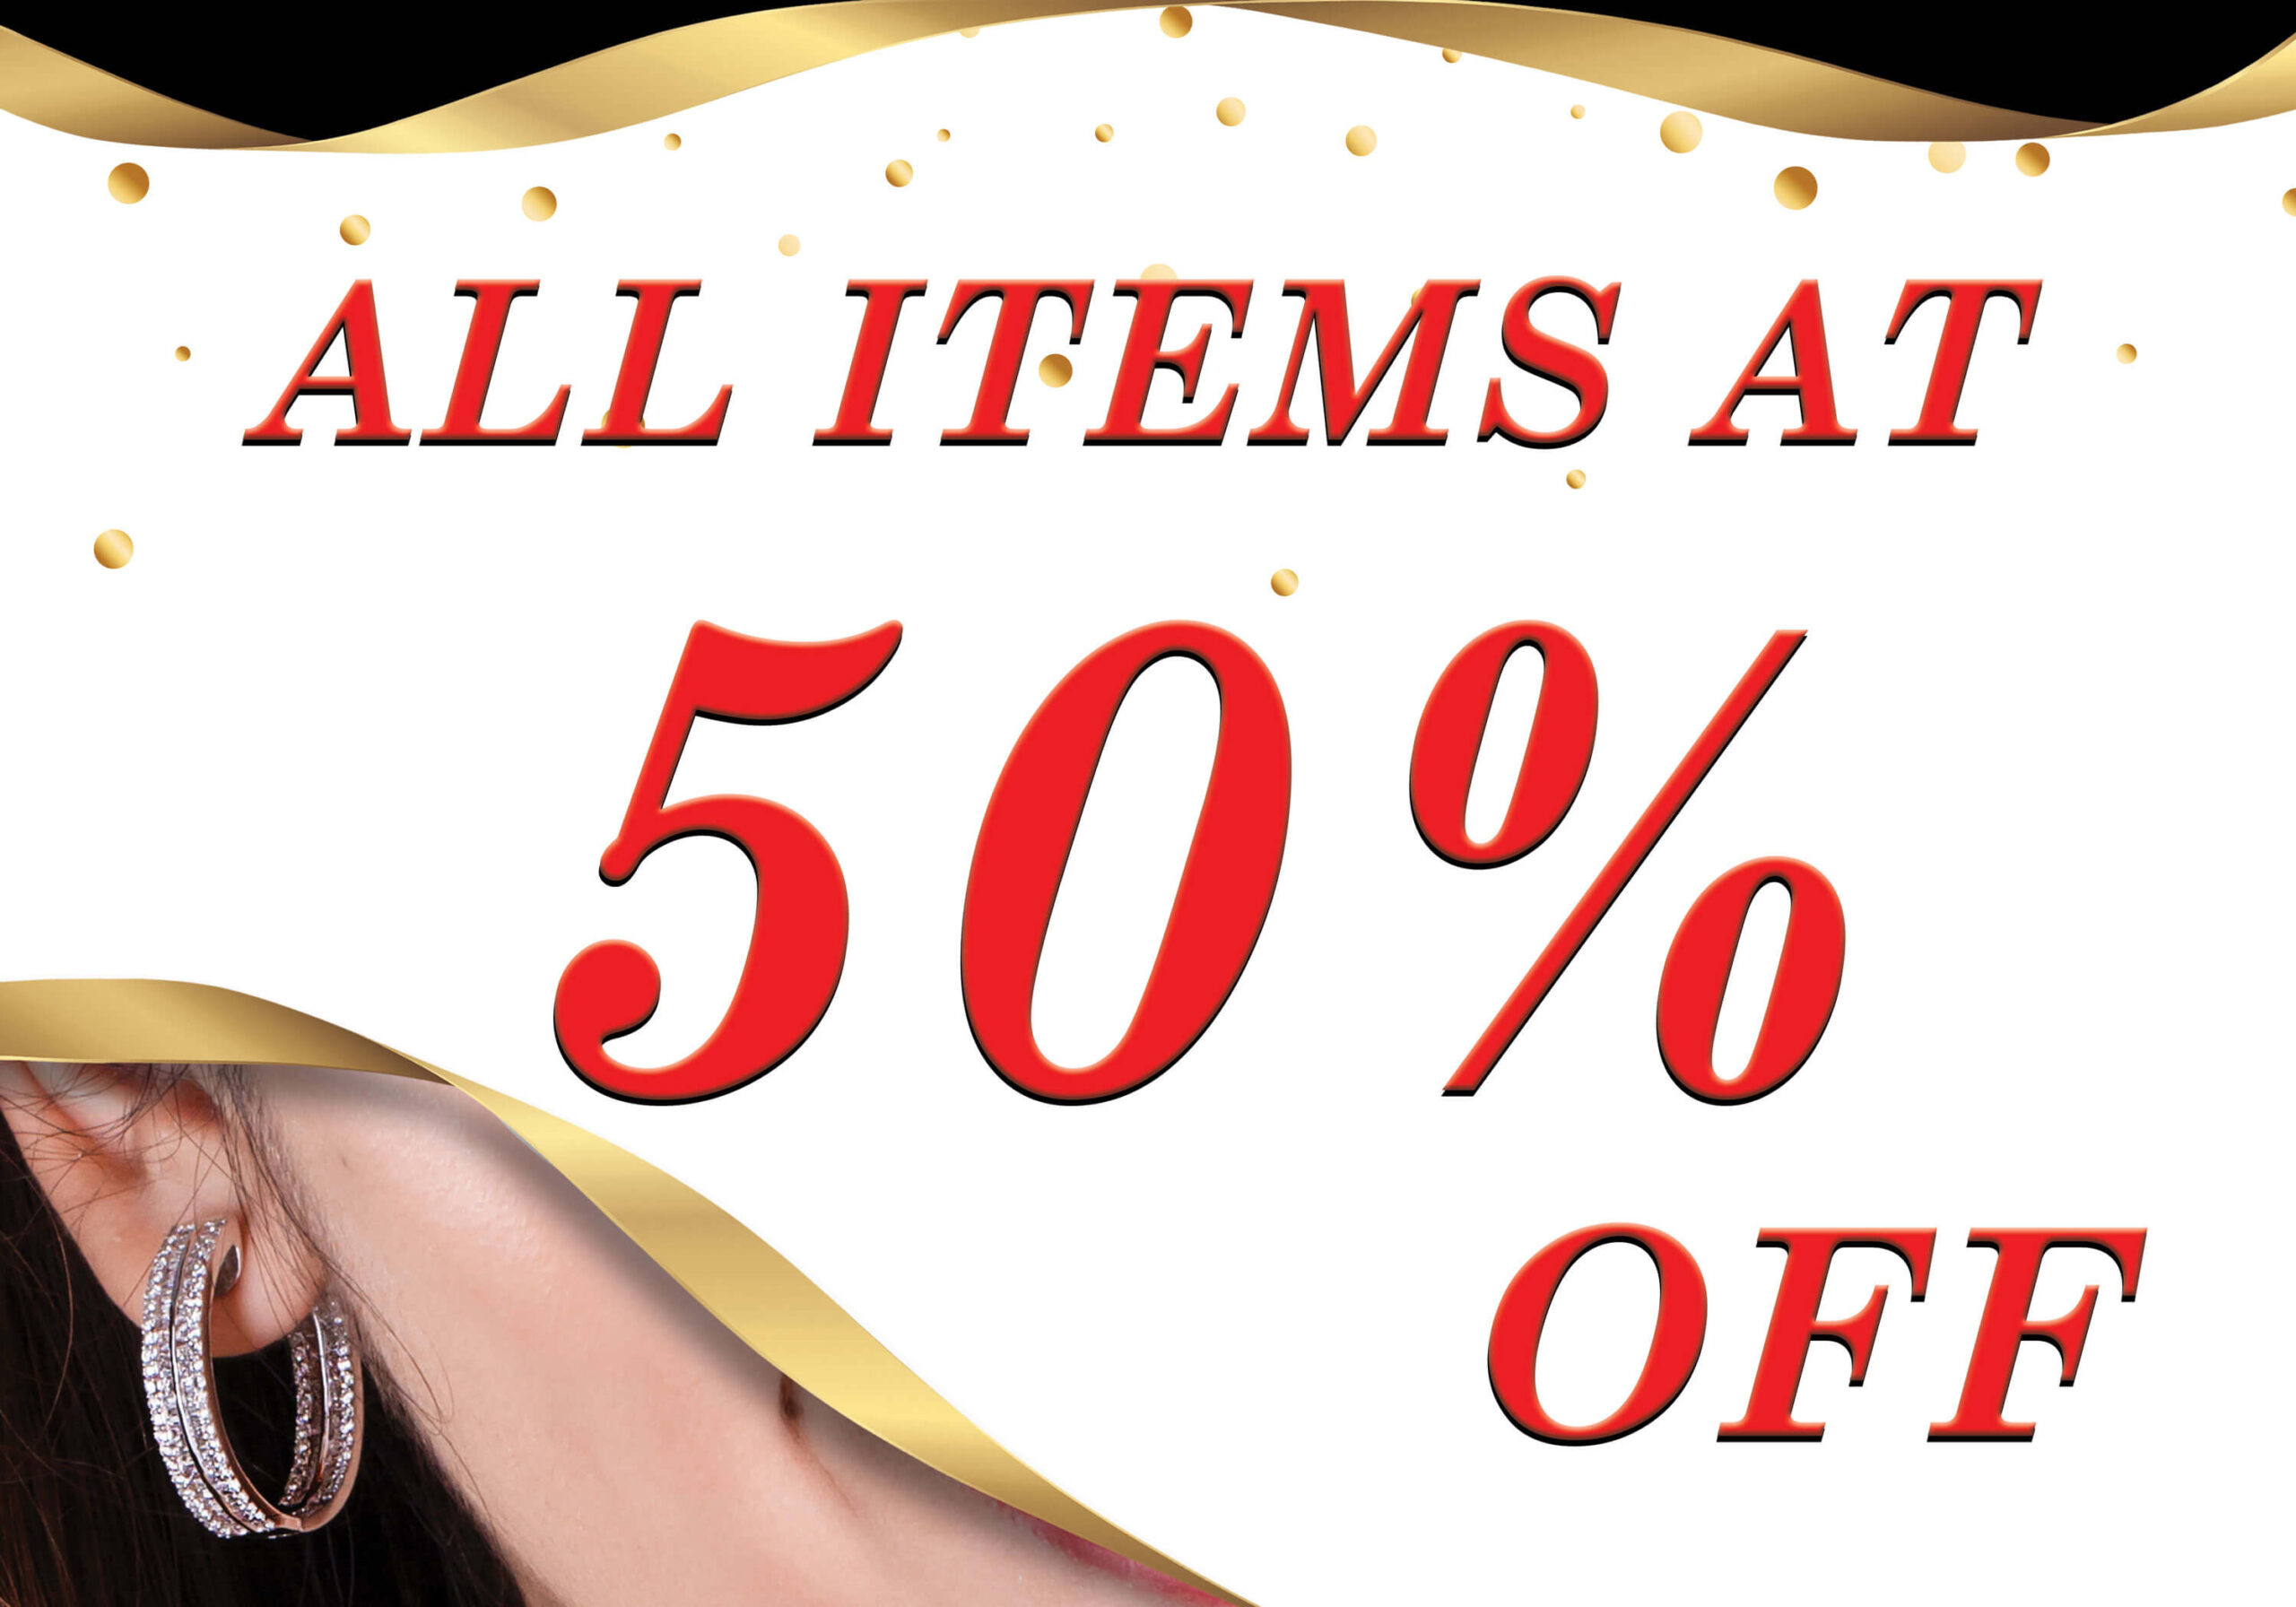 My Jewels offers all items at 50% off